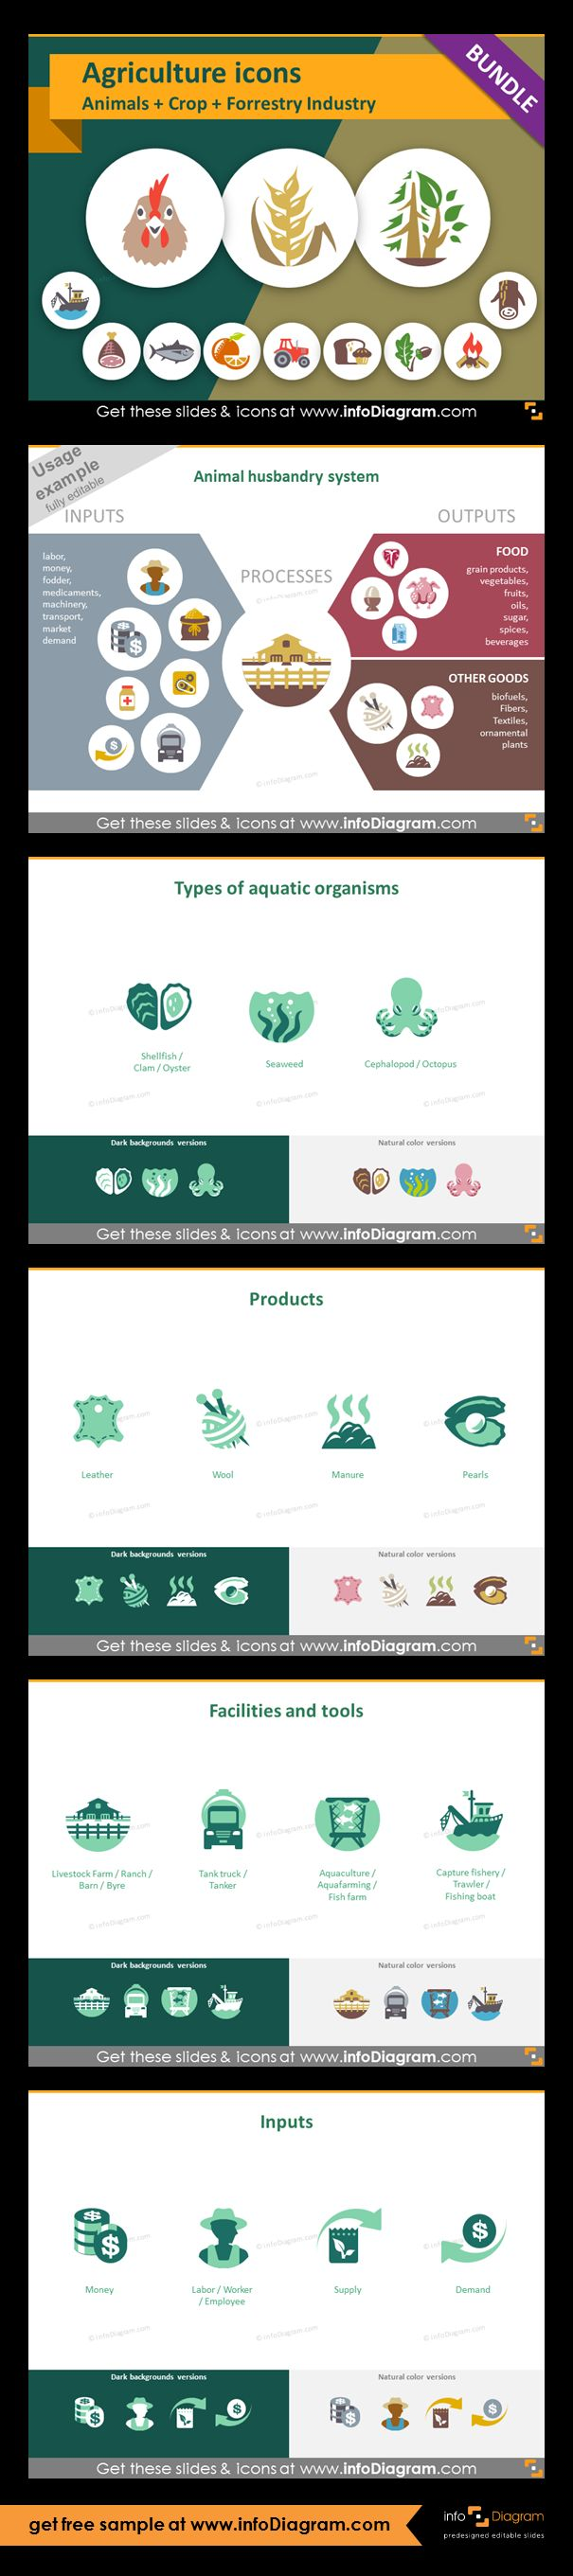 Food and Agriculture icons: Animals, Crop Cultivation, Forestry. All symbols in simple flat style, suitable for Metro UI style graphics. Icons provided in 5 versions. Slide presenting animal husbandry system. Types of aquatic organism and icons of fish, shrimp, crab, shellfish, seaweed, octopus. Products of animal husbandry and fishery: leather, wool, manure, pearl.. Animal husbandry and fishery facilities and tools. Clip arts of livestock farm, tank truck, aquaculture, fishing boat.